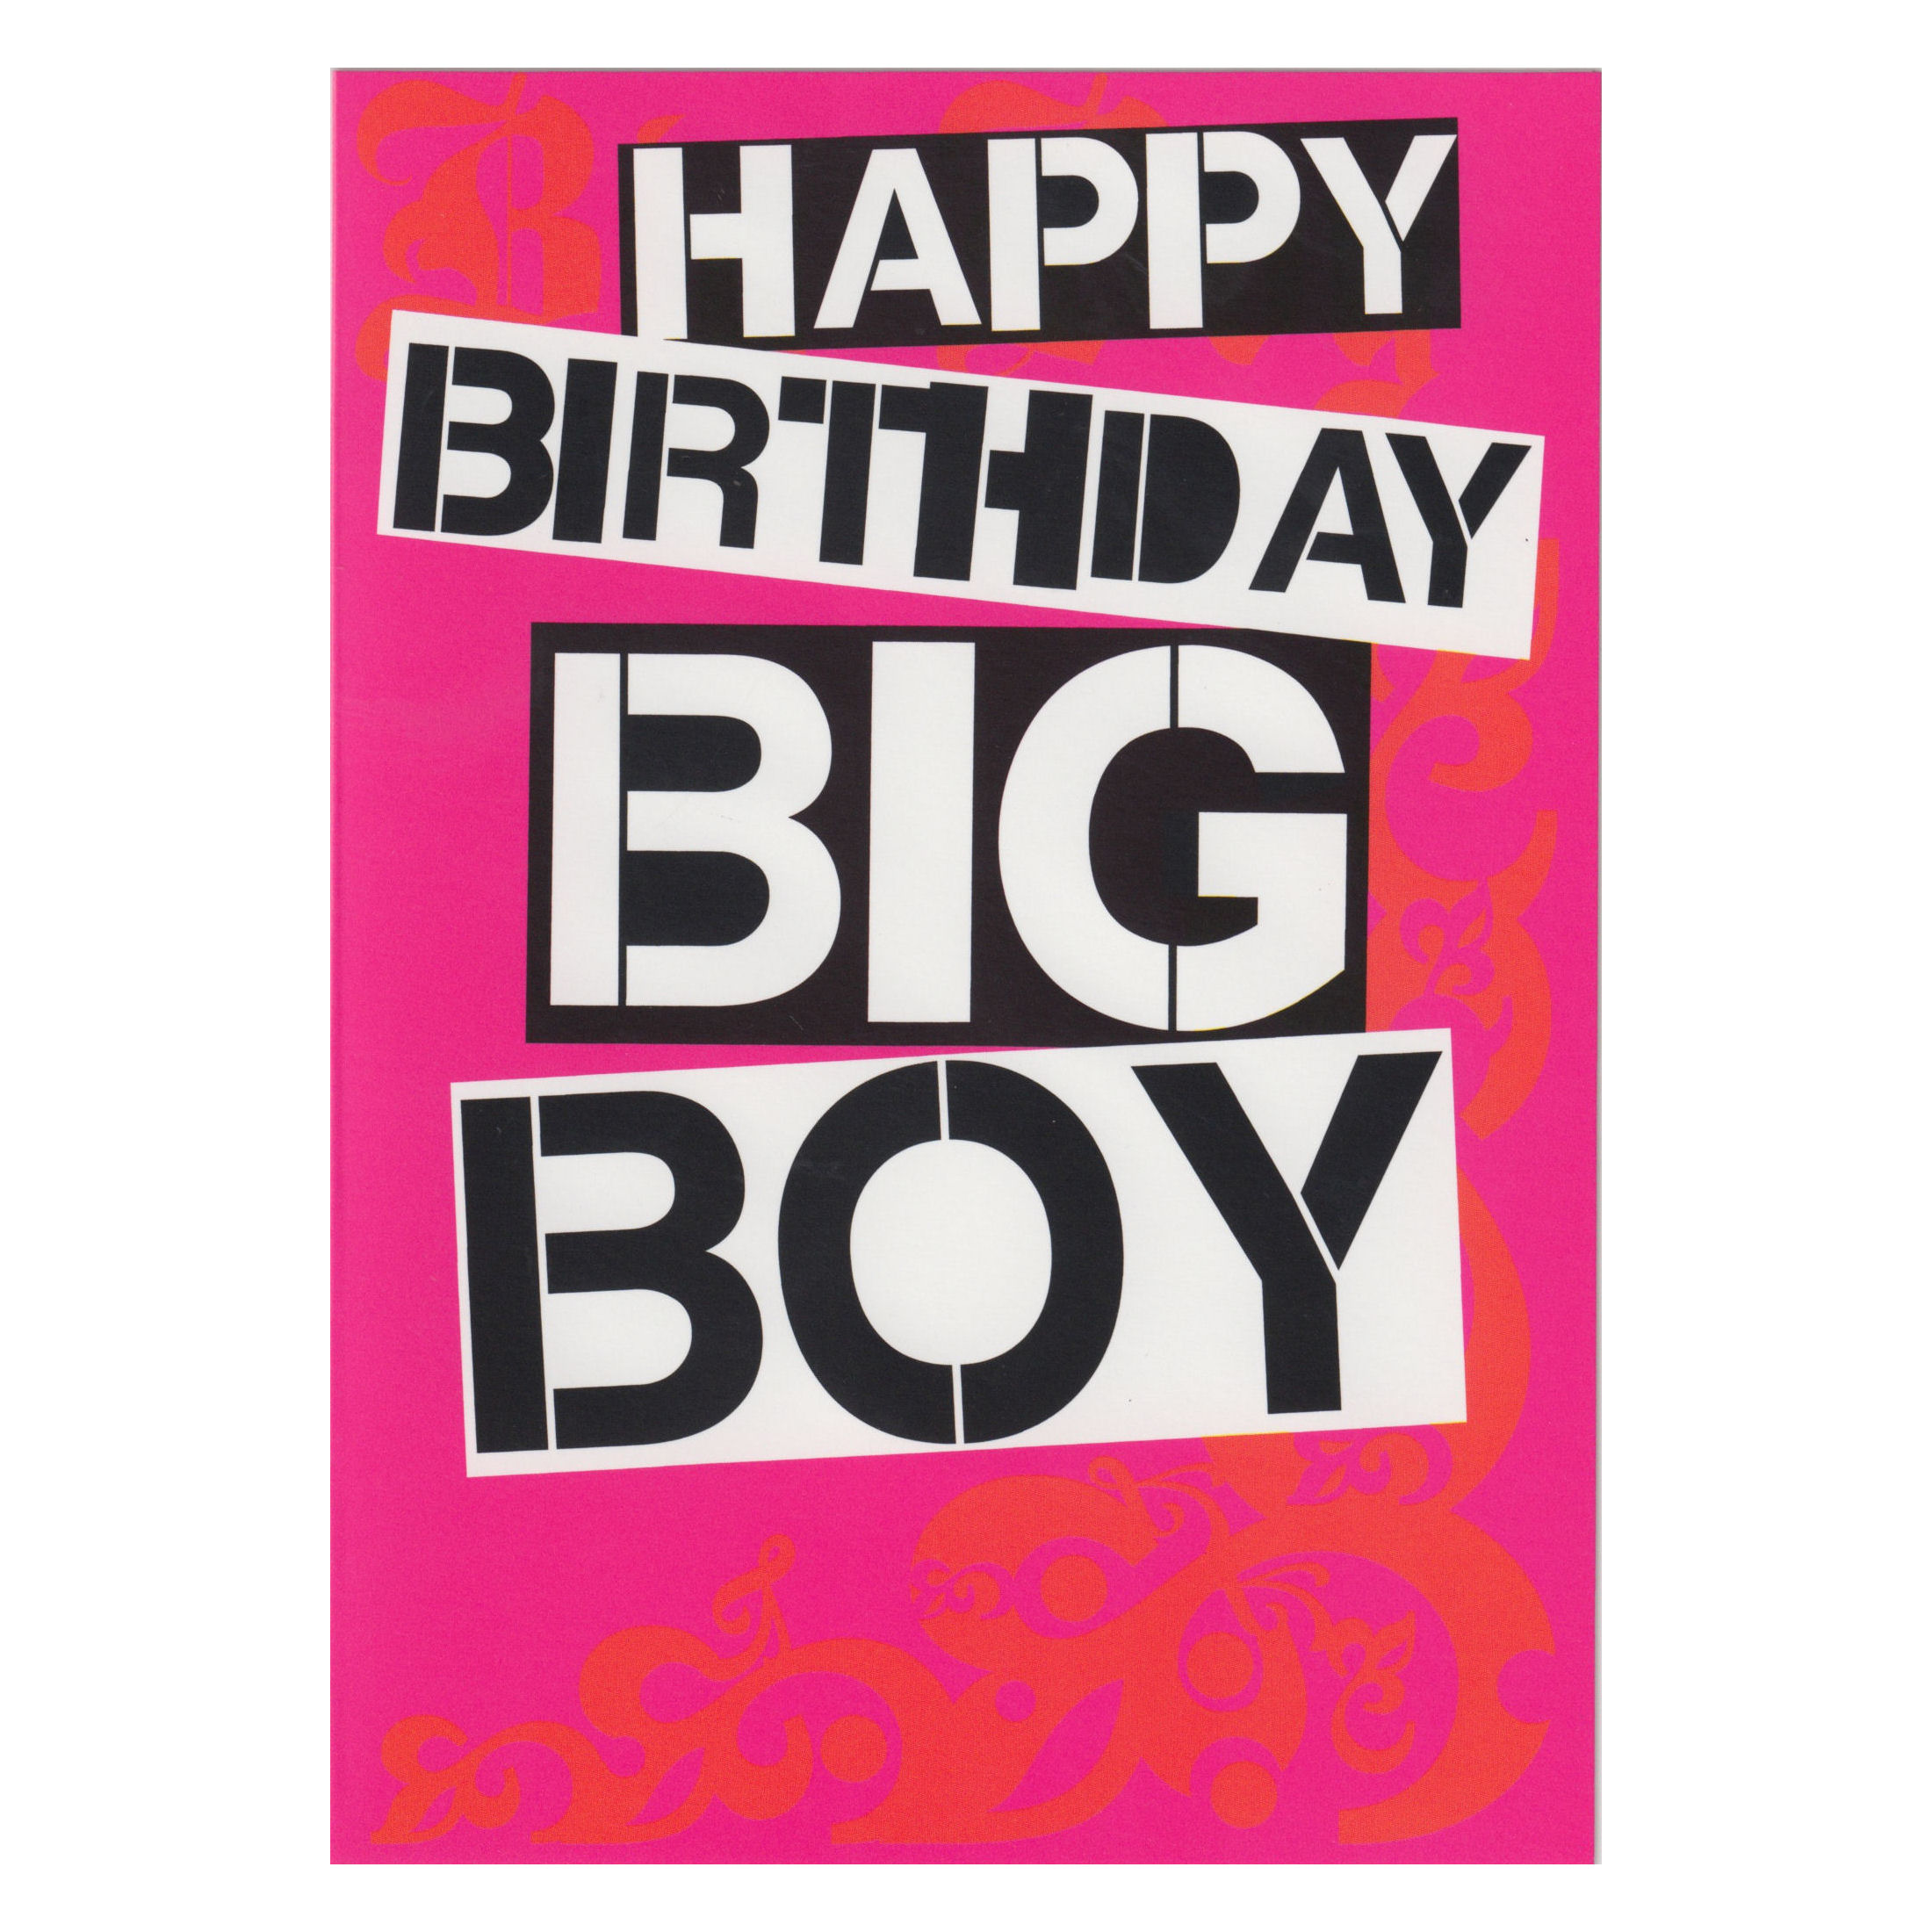 HAPPY BIRTHDAY BIG BOY GREETING CARD RETRO ADULT HUMOUR BLANK GIFT HIM HUSBAND